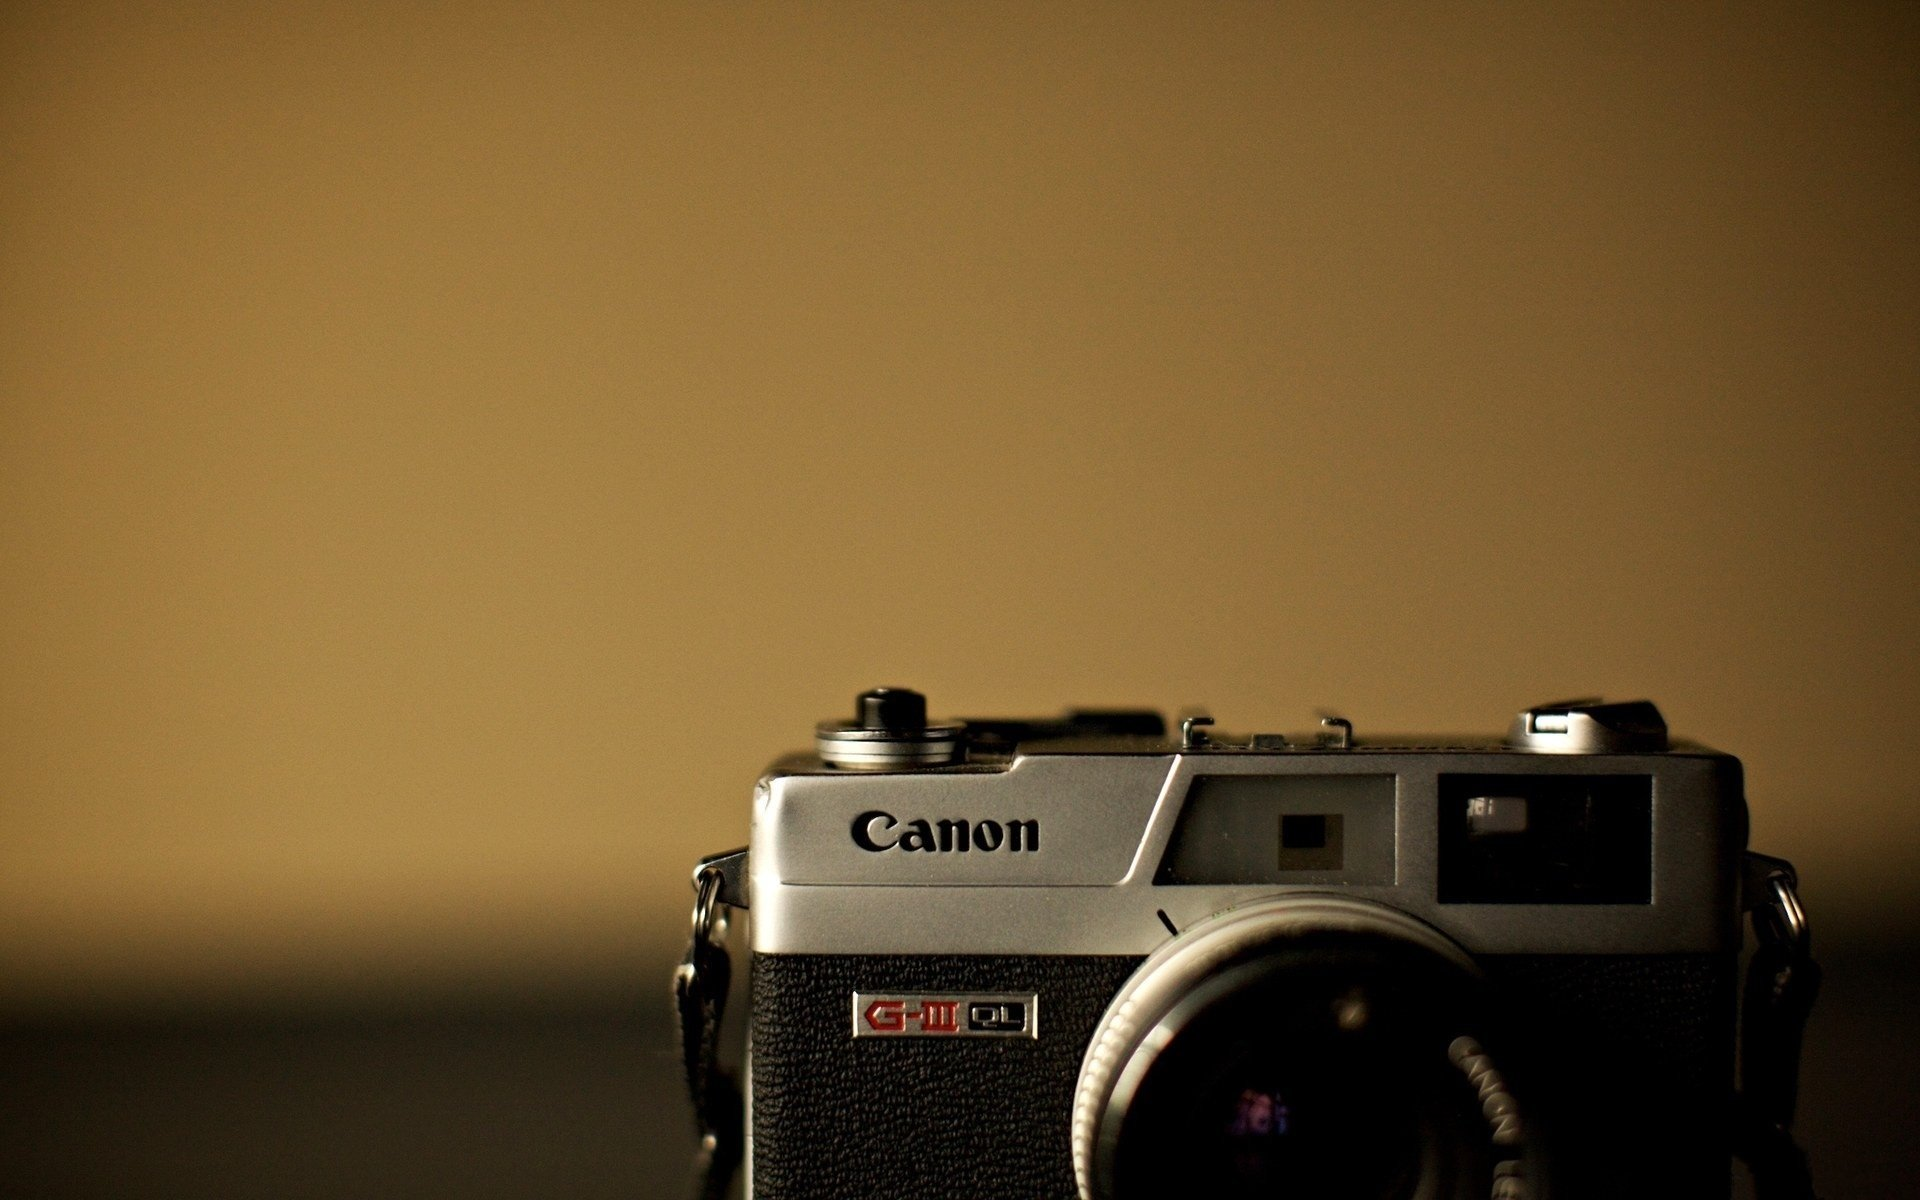 canon wallpaper camera retro desktop photography wallpapers